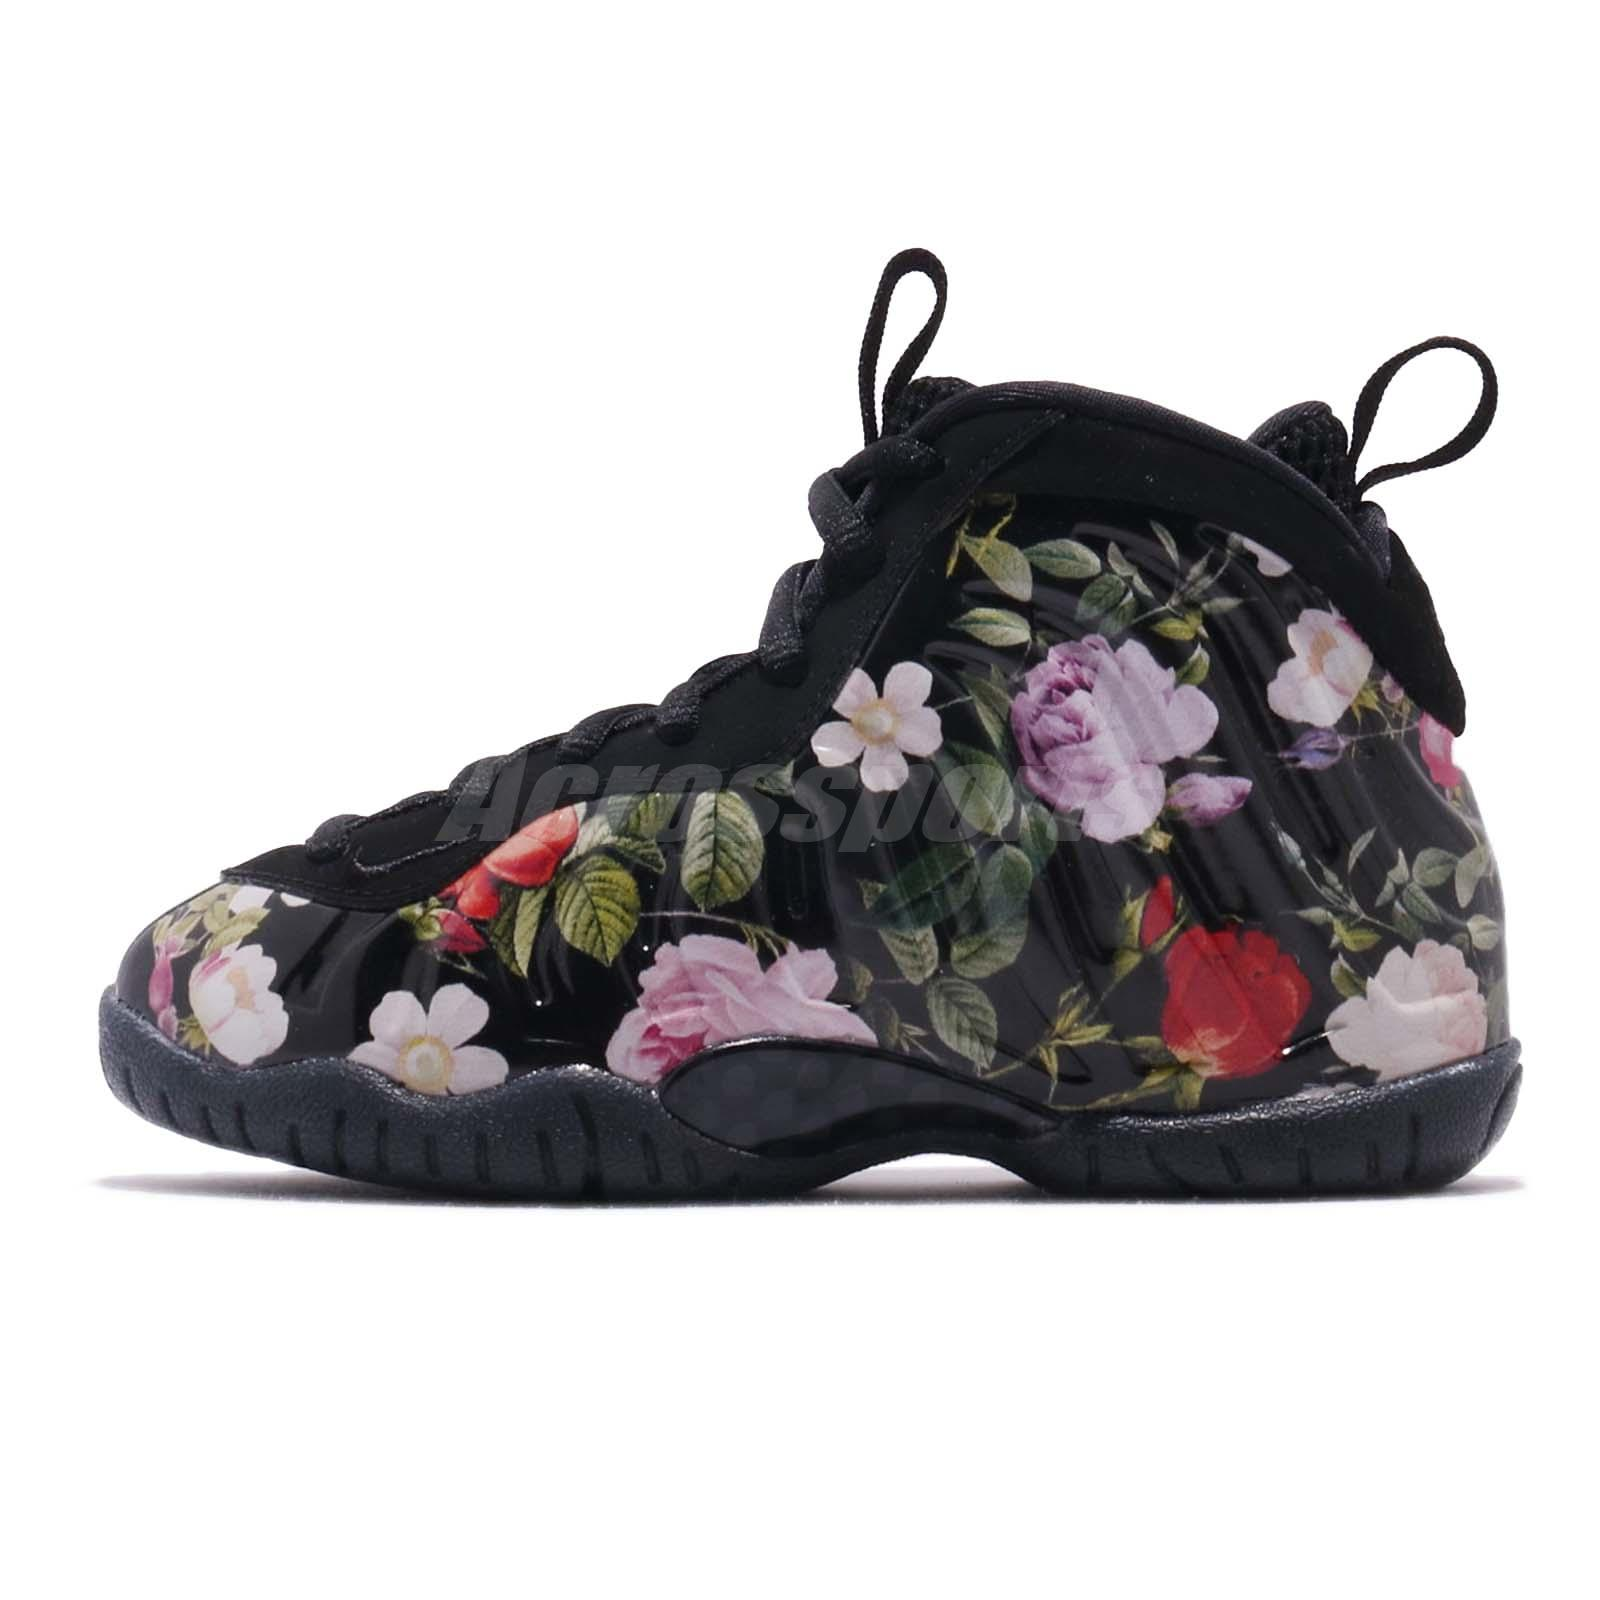 Nike Little Posite One Prm PS Foamposite Floral Kid Preschool Shoes  AT8249-001 06966c006